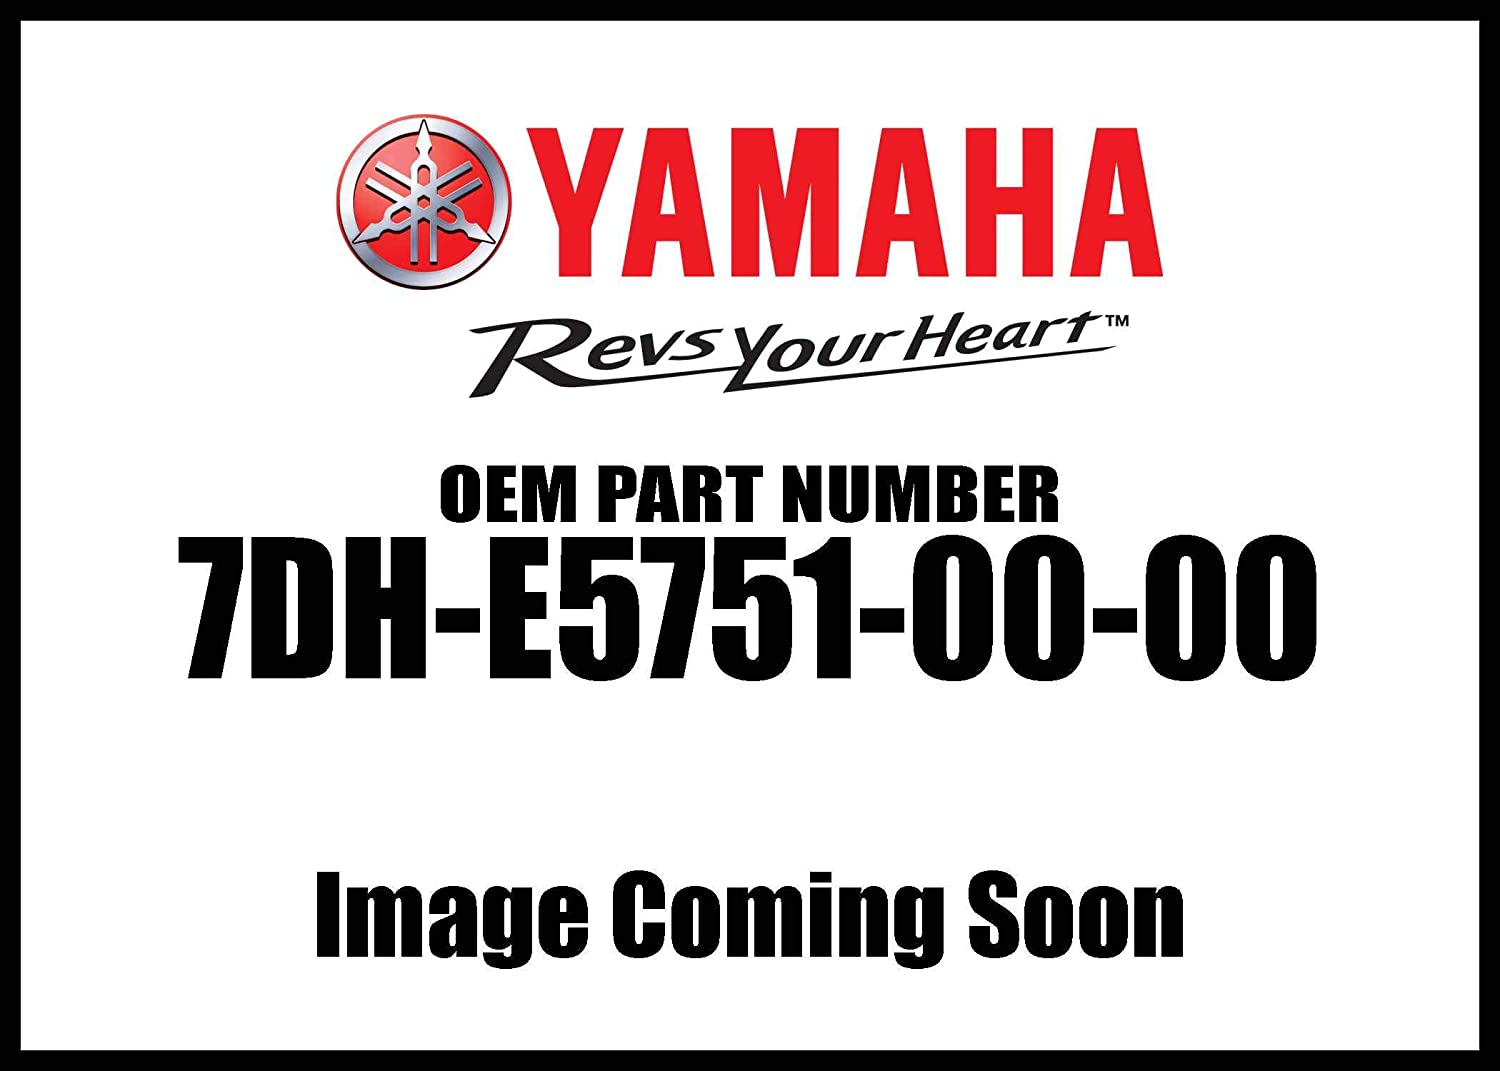 Yamaha Wire Starter 7Dh-E5751-00-00 New Oem